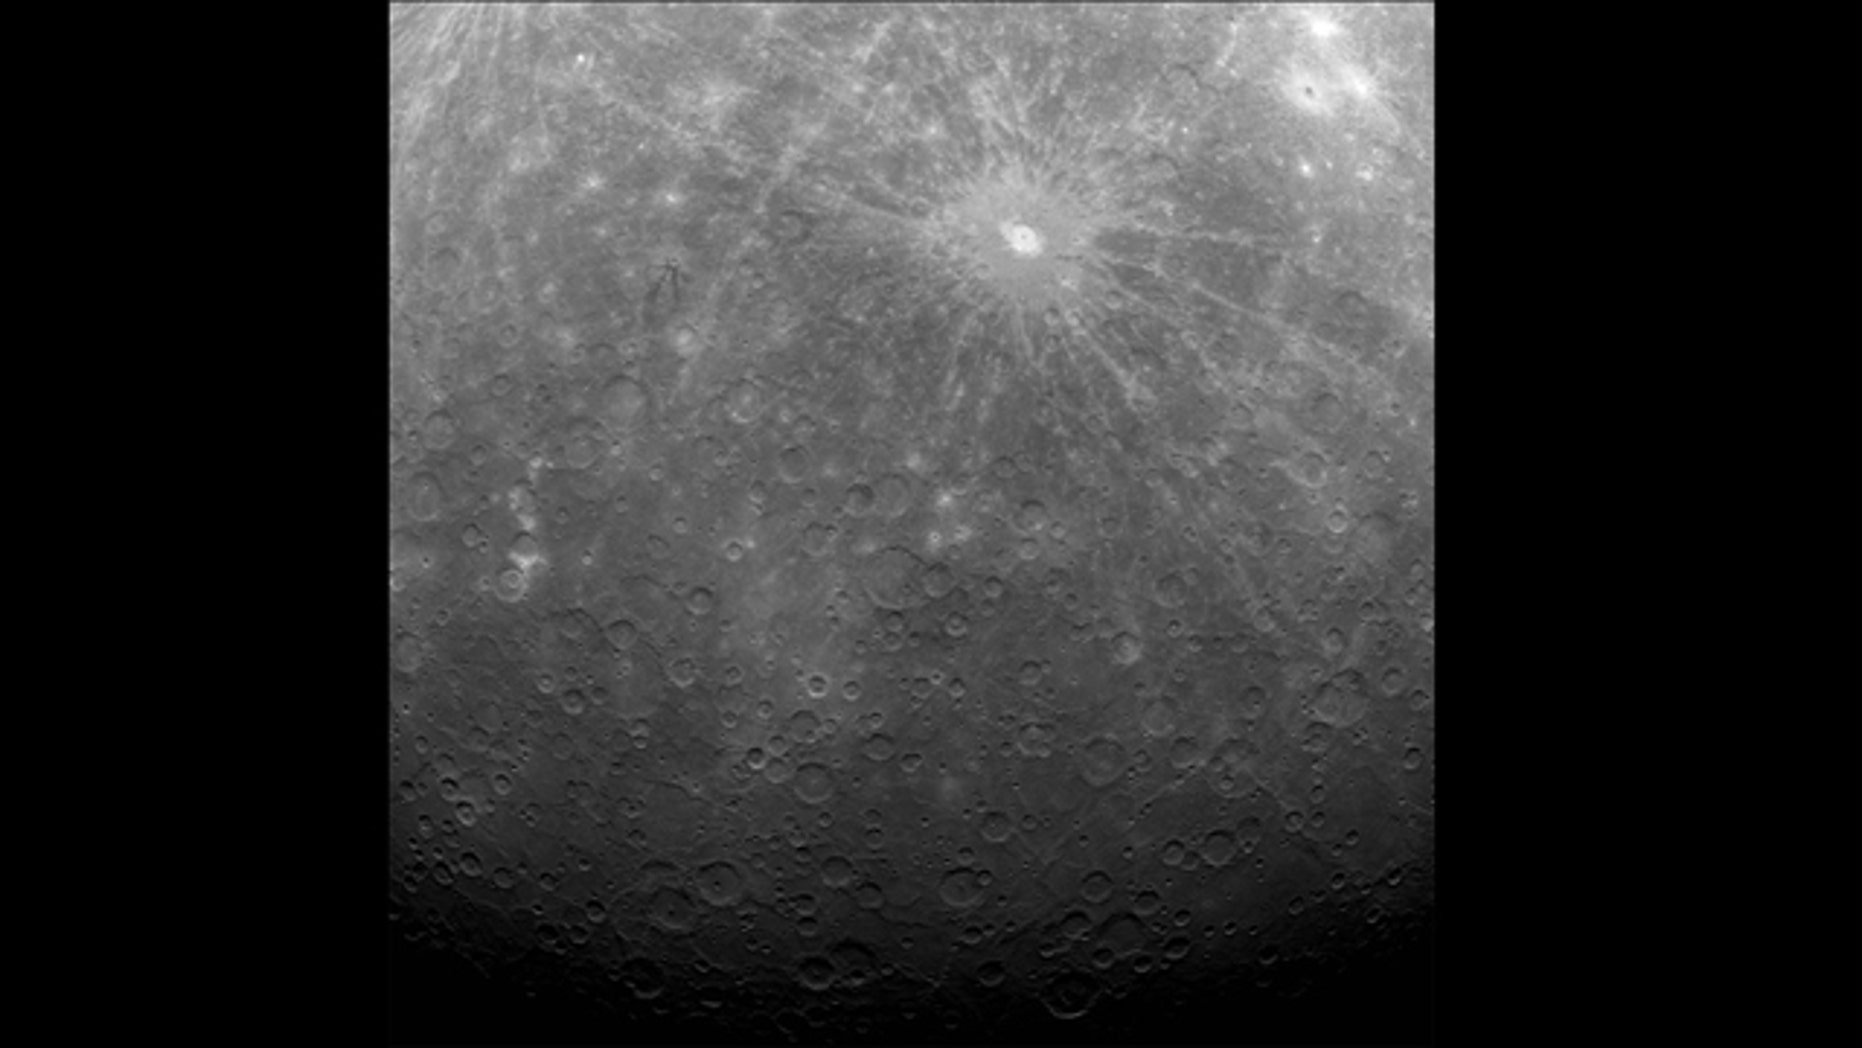 NASA's Mercury Messenger probe captured this historic image of Mercury, the first ever obtained from a spacecraft in orbit about the solar system's innermost planet. The photo was taken on Tuesday (March 29) at 5:20 am EDT.